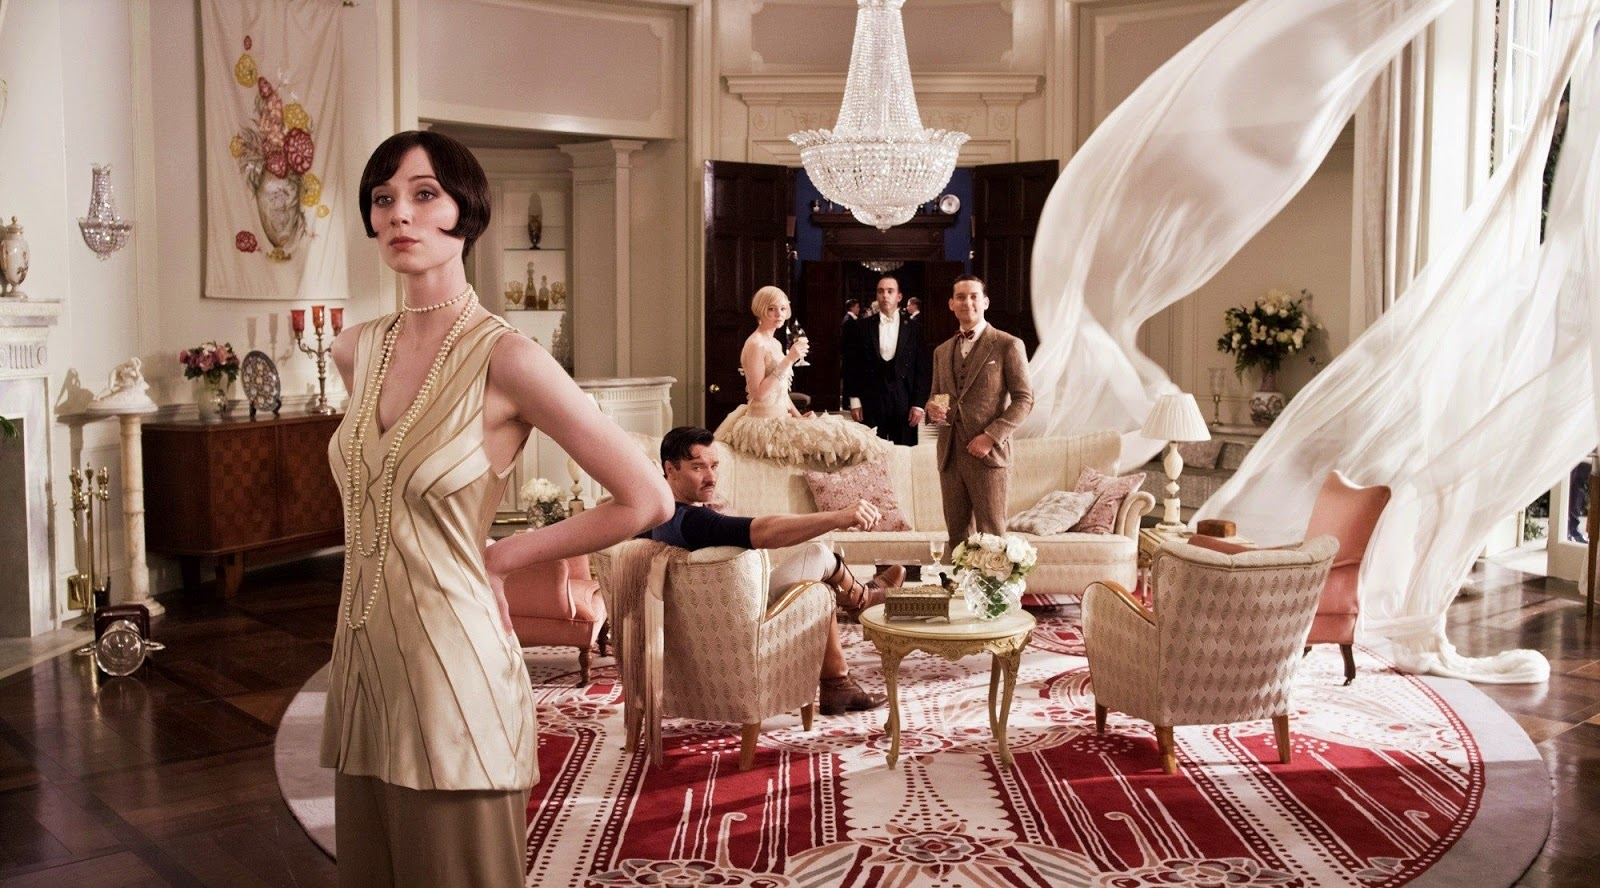 the-great-gatsby-image03.jpg